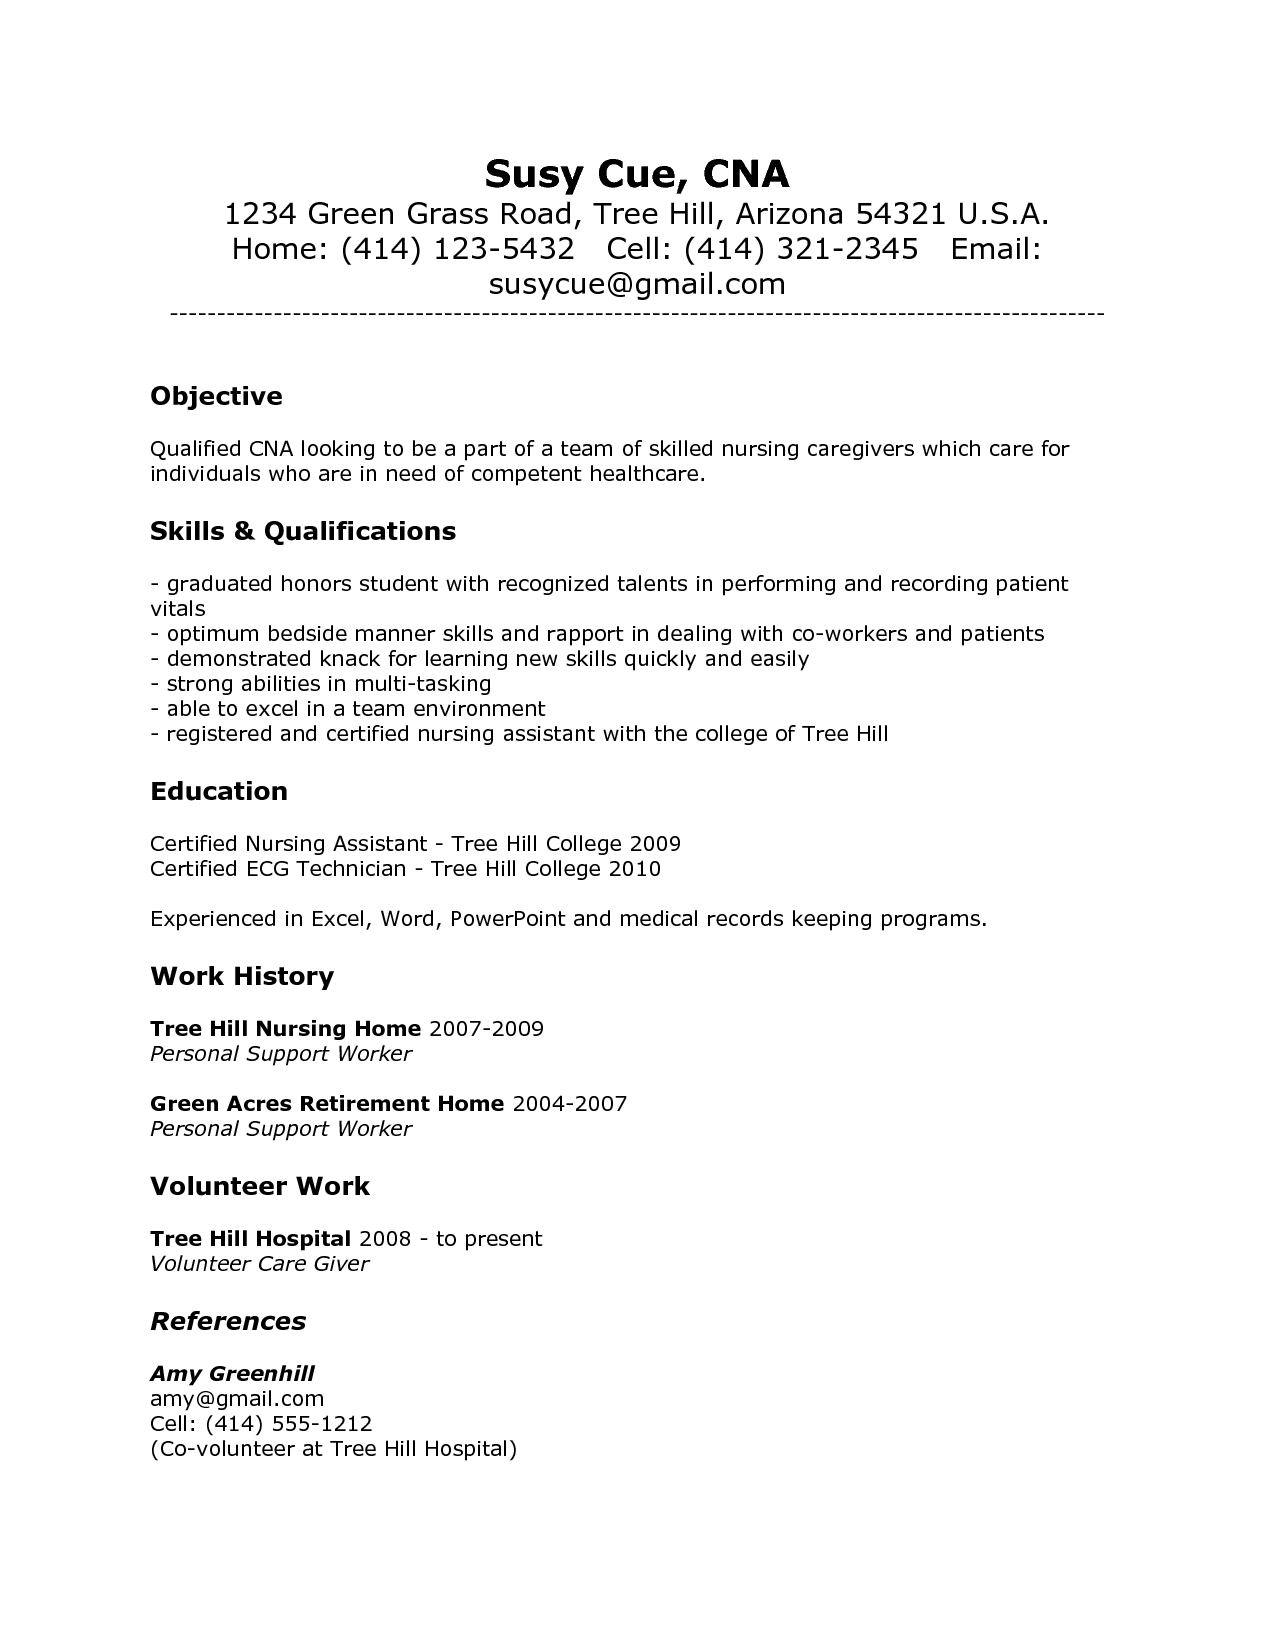 Resume Objective Examples For Healthcare Resume Samplecna Job Duties Resume Resume Sample Geriatric